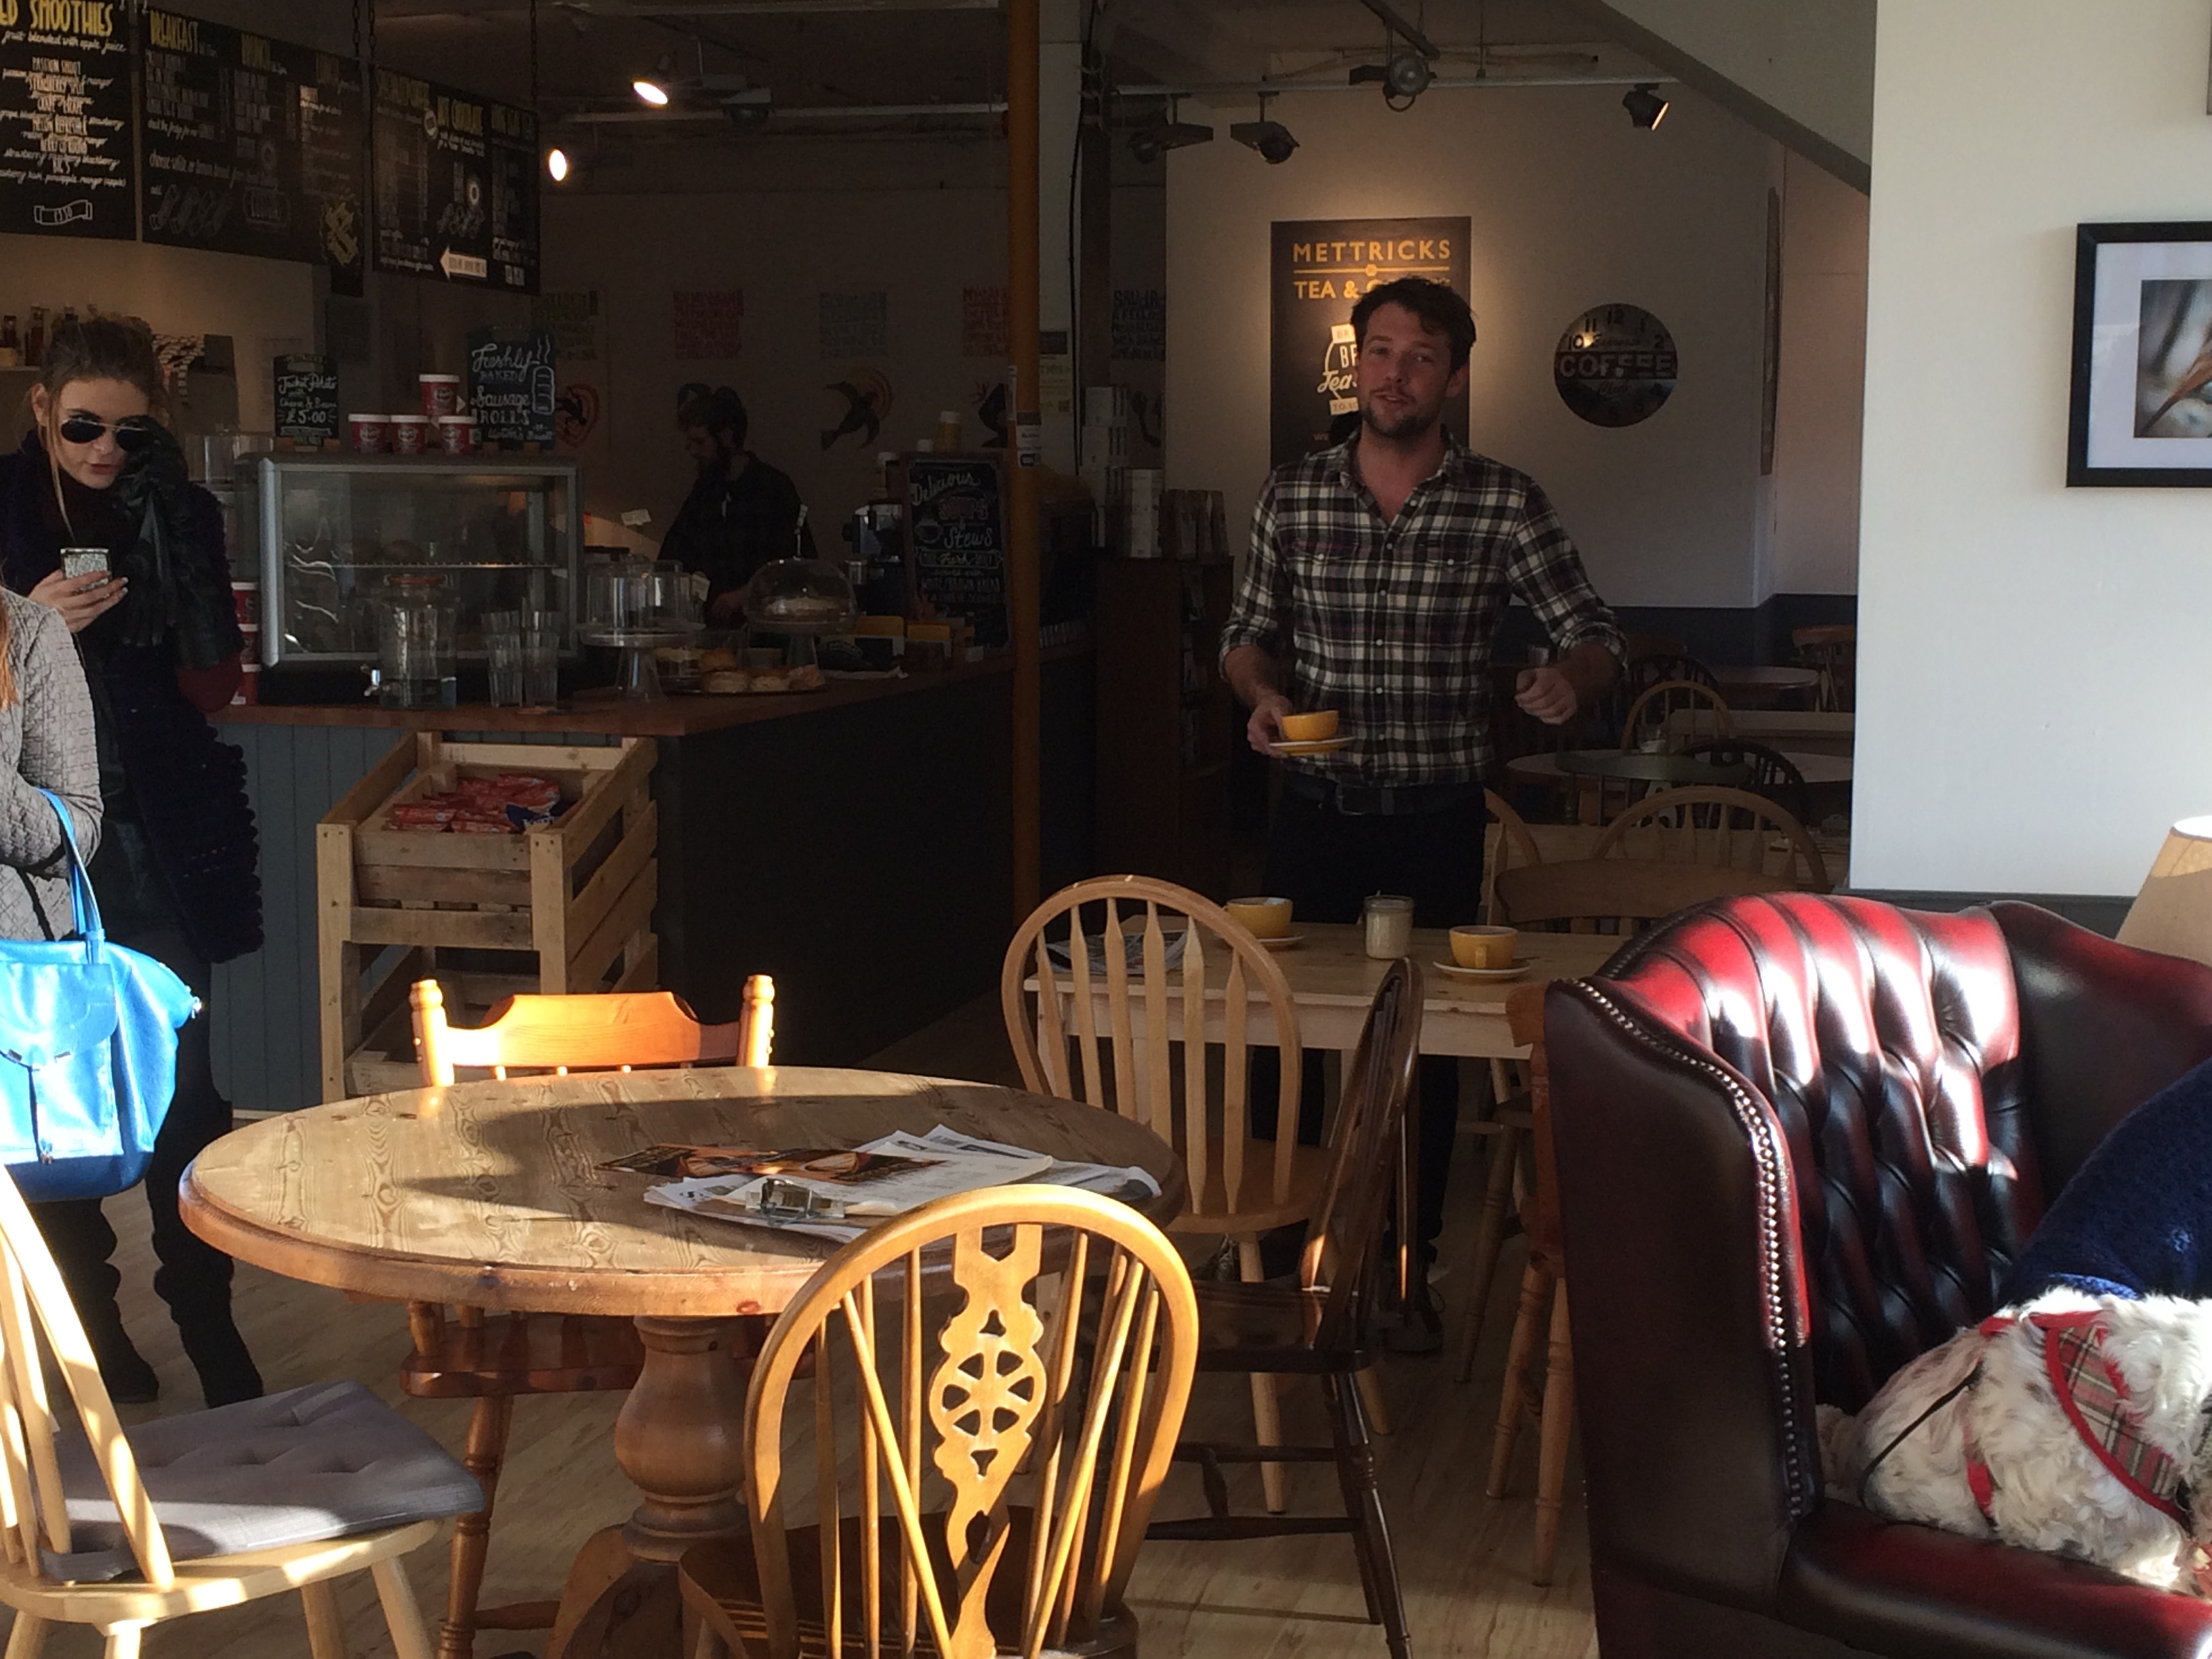 Independent coffee shop swaps price tags for charity donations